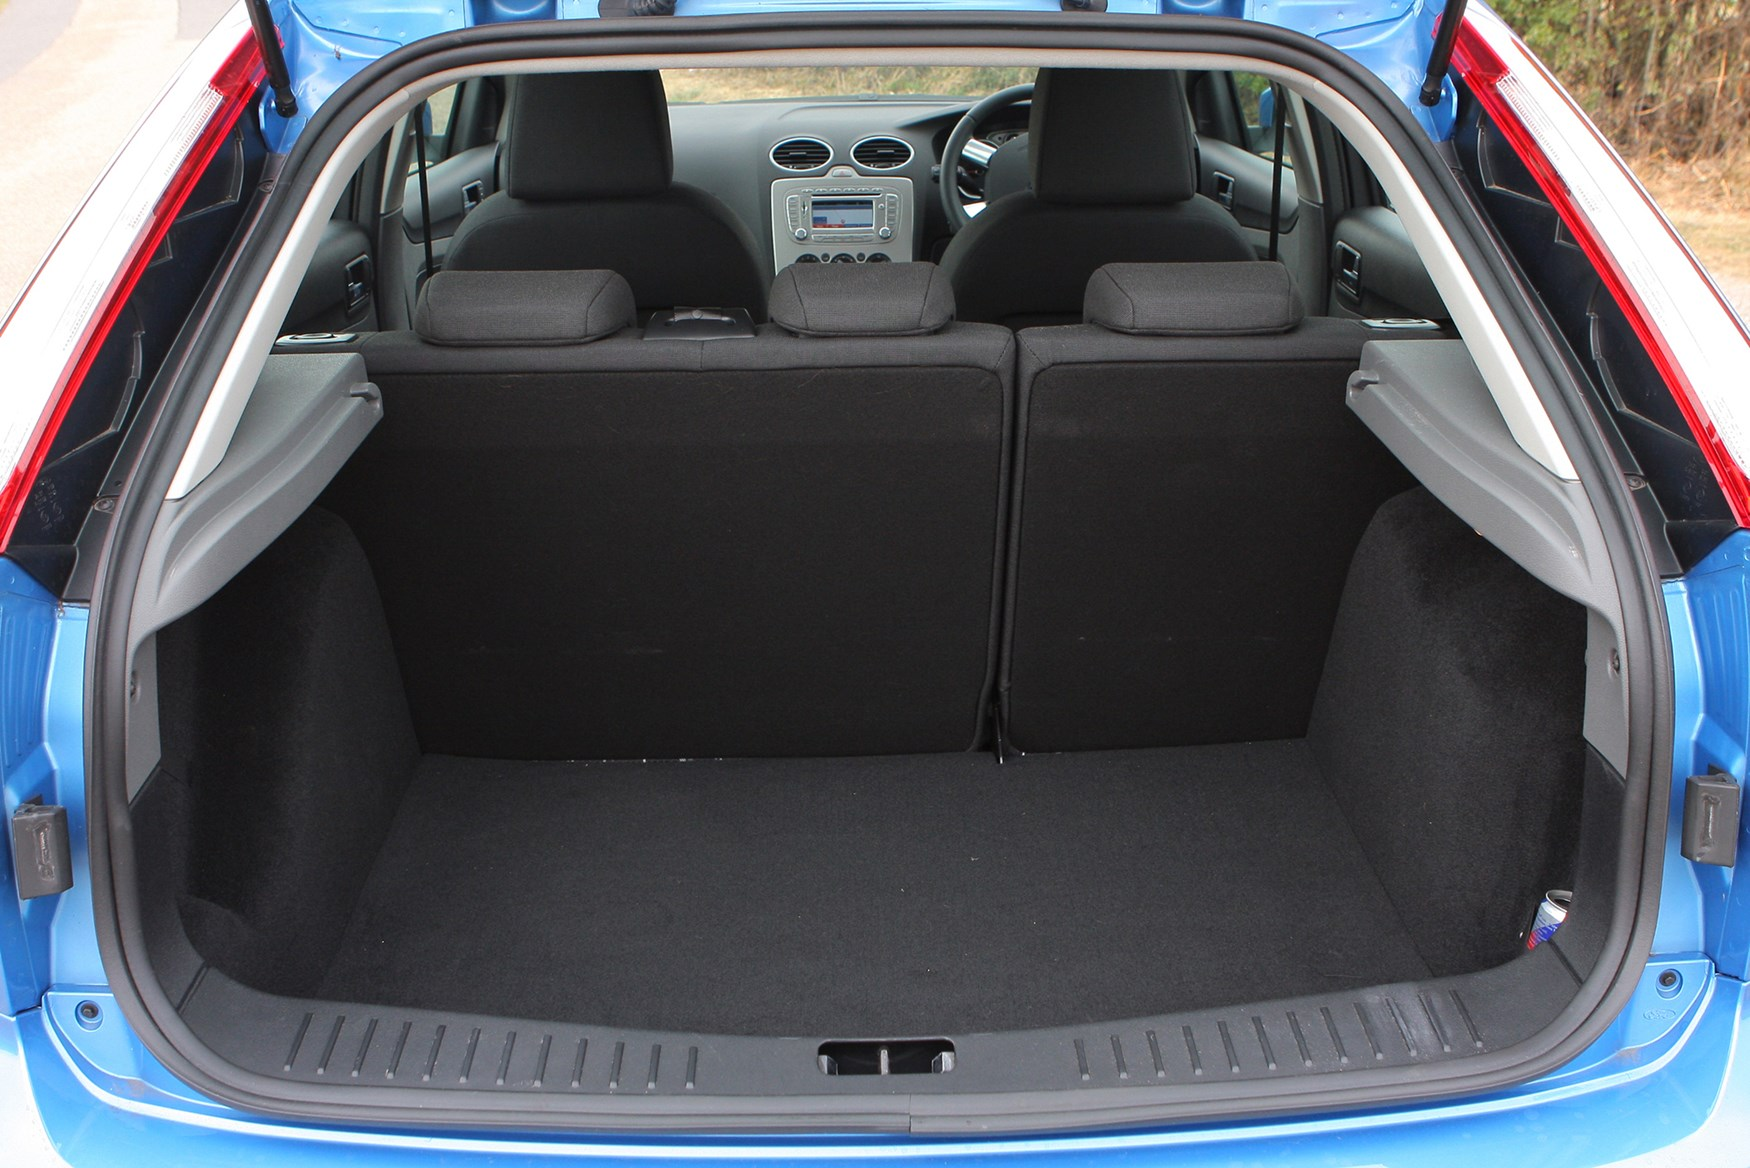 Ford Focus Hatchback 2005 2011 Features Equipment And Daihatsu Side Mirror Wiring Diagram View All Images Of The 05 11